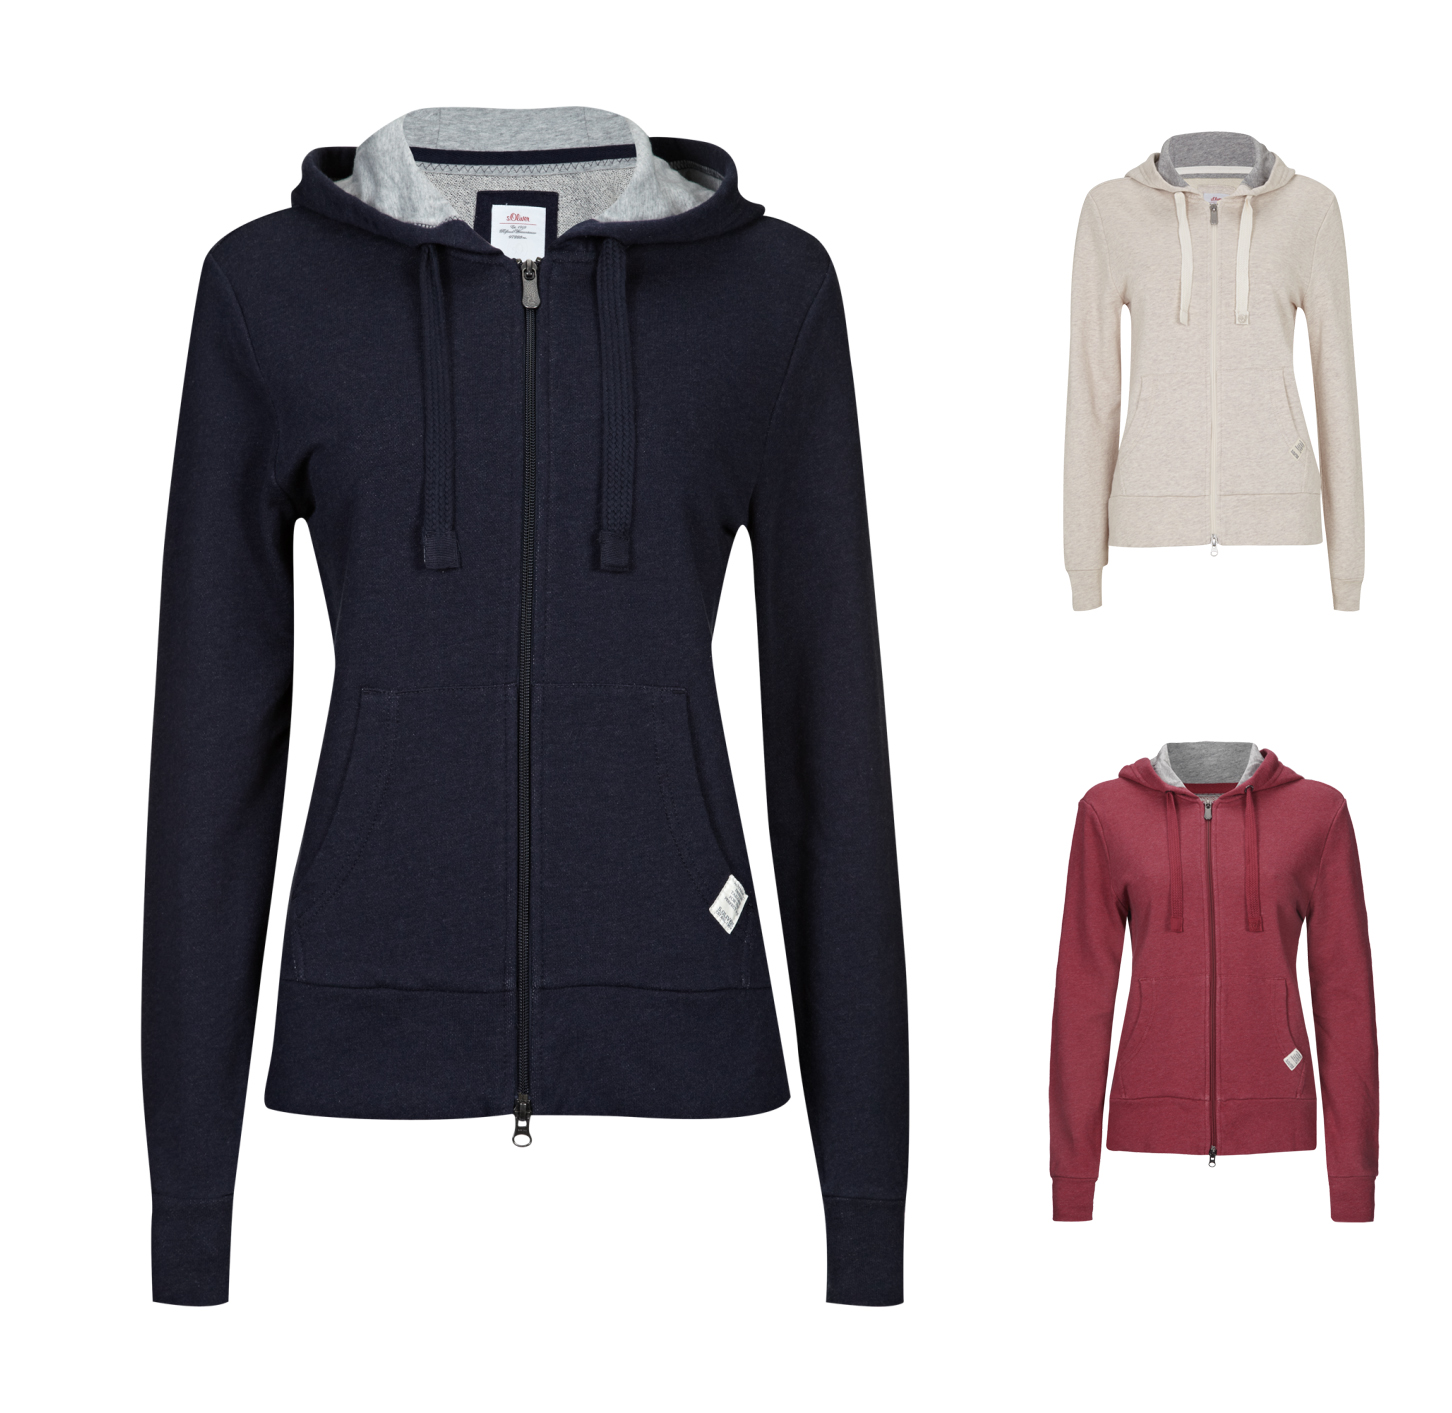 s oliver casual sweatjacke mit kapuze damen sweat neu ebay. Black Bedroom Furniture Sets. Home Design Ideas